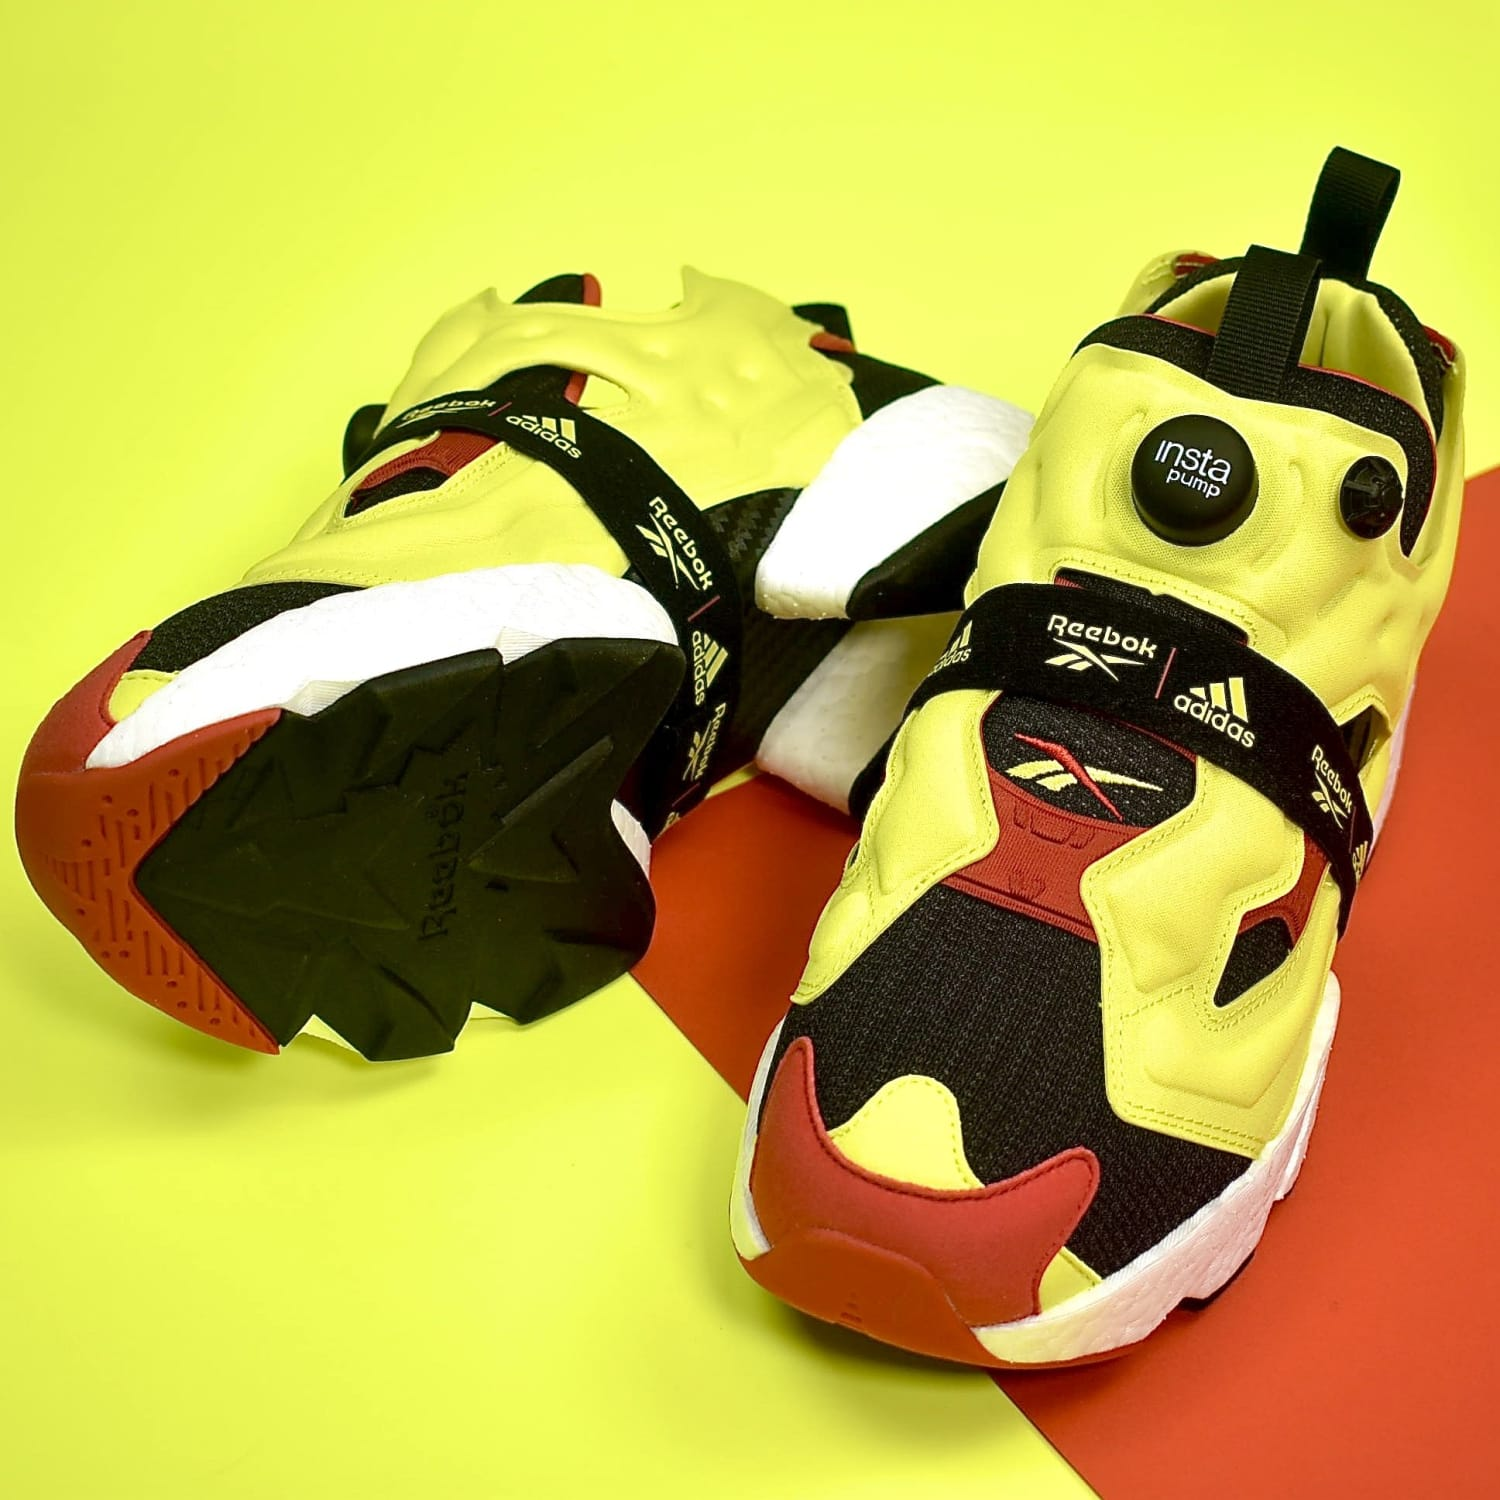 Reebok Instapump Fury Makes History with Adidas Boost Technology